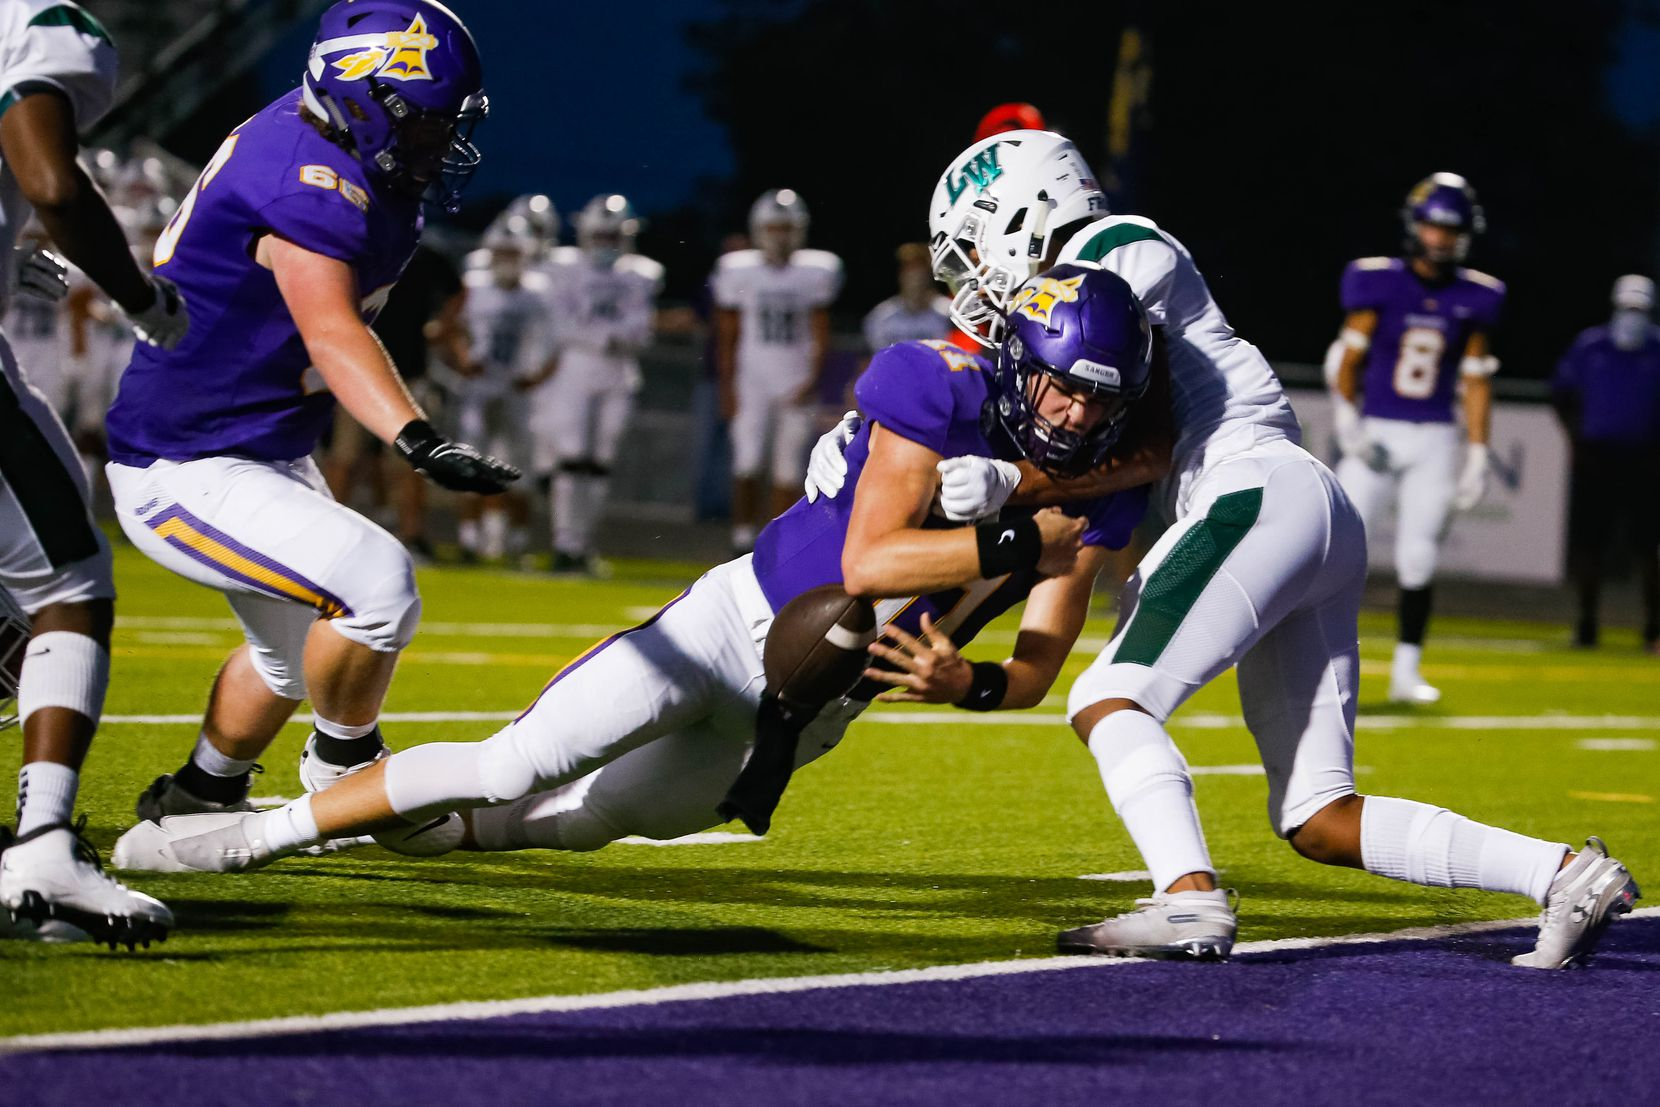 Sanger High School player Rylan Smart is tackled before the goal line by Lake Worth High School's defense during the first half of a game on Sept. 4, 2020 in Sanger.  Sanger leads 26-14 at halftime. (Juan Figueroa/ The Dallas Morning News)